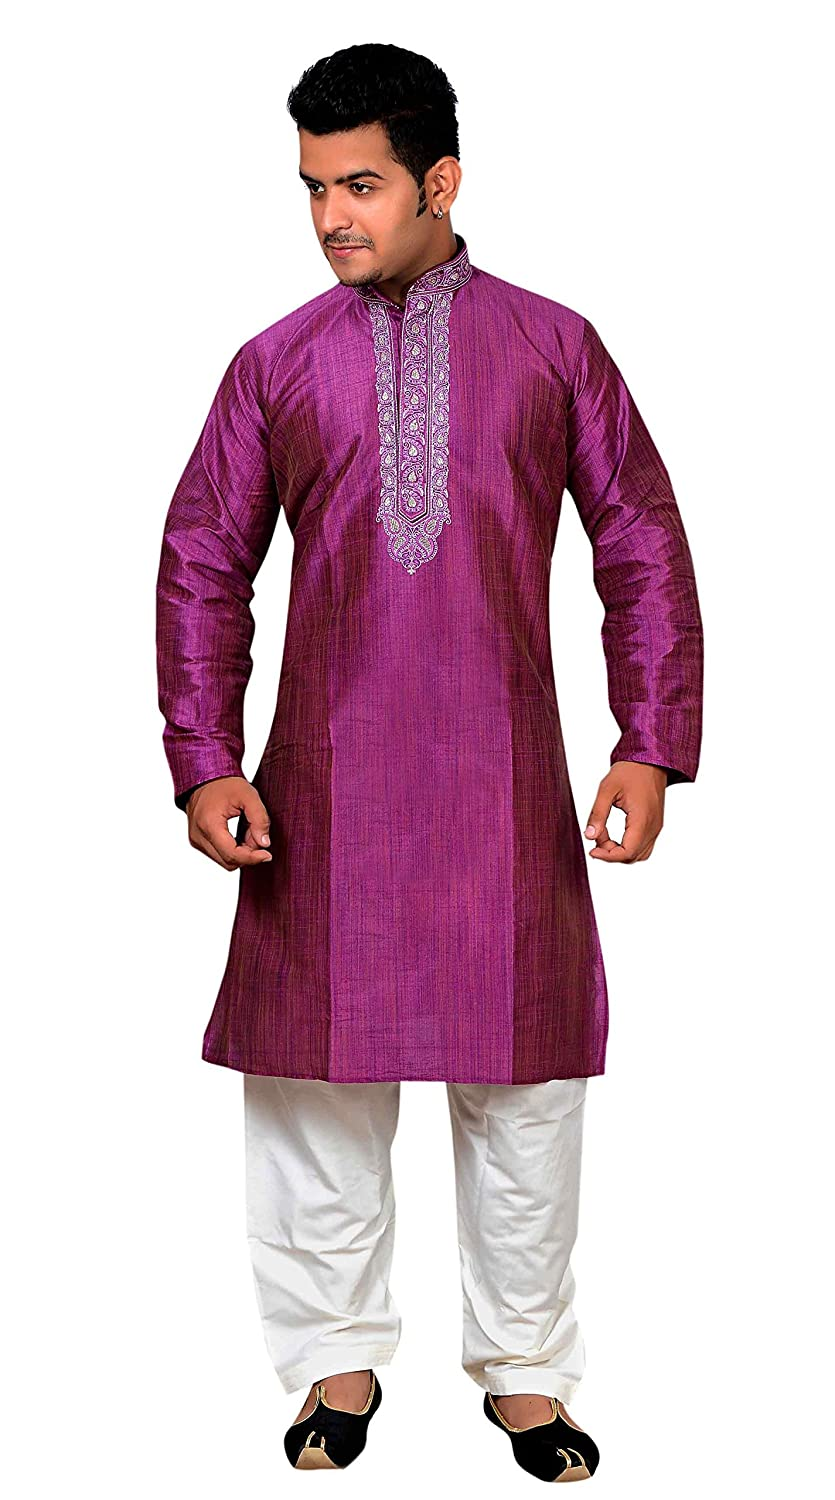 Amazon.com: Mens Indian Red Violet Sherwani Kurta salwar kameez for Bollywood theme party outfit London 748 (36 (S - UK), Red Violet): Clothing